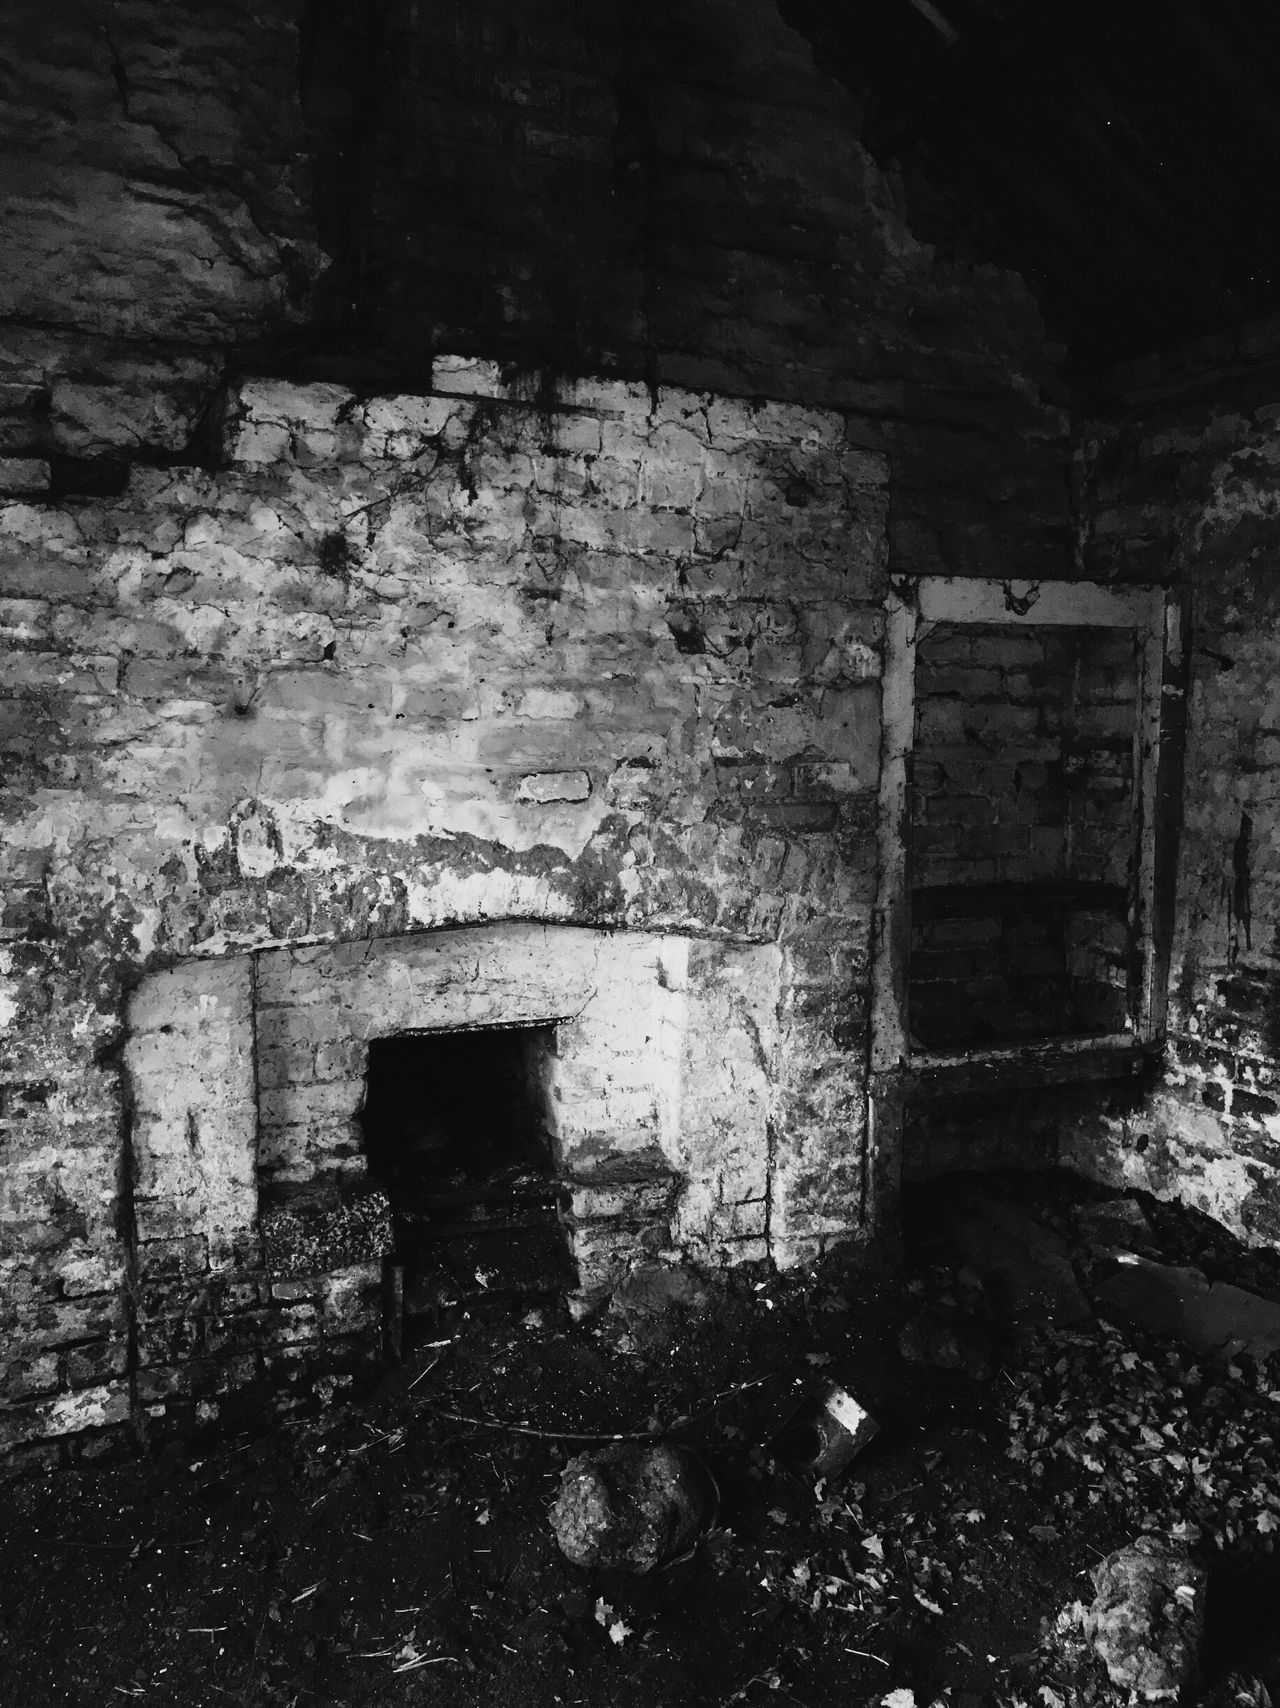 Crime Scene Deathlyhallows Mysterious Abandoned Damaged Brick Wall Obsolete No People Weathered Bad Condition Built Structure Architecture Building Exterior House Worn Out Discarded Day Outdoors Lostplaces Haunted House